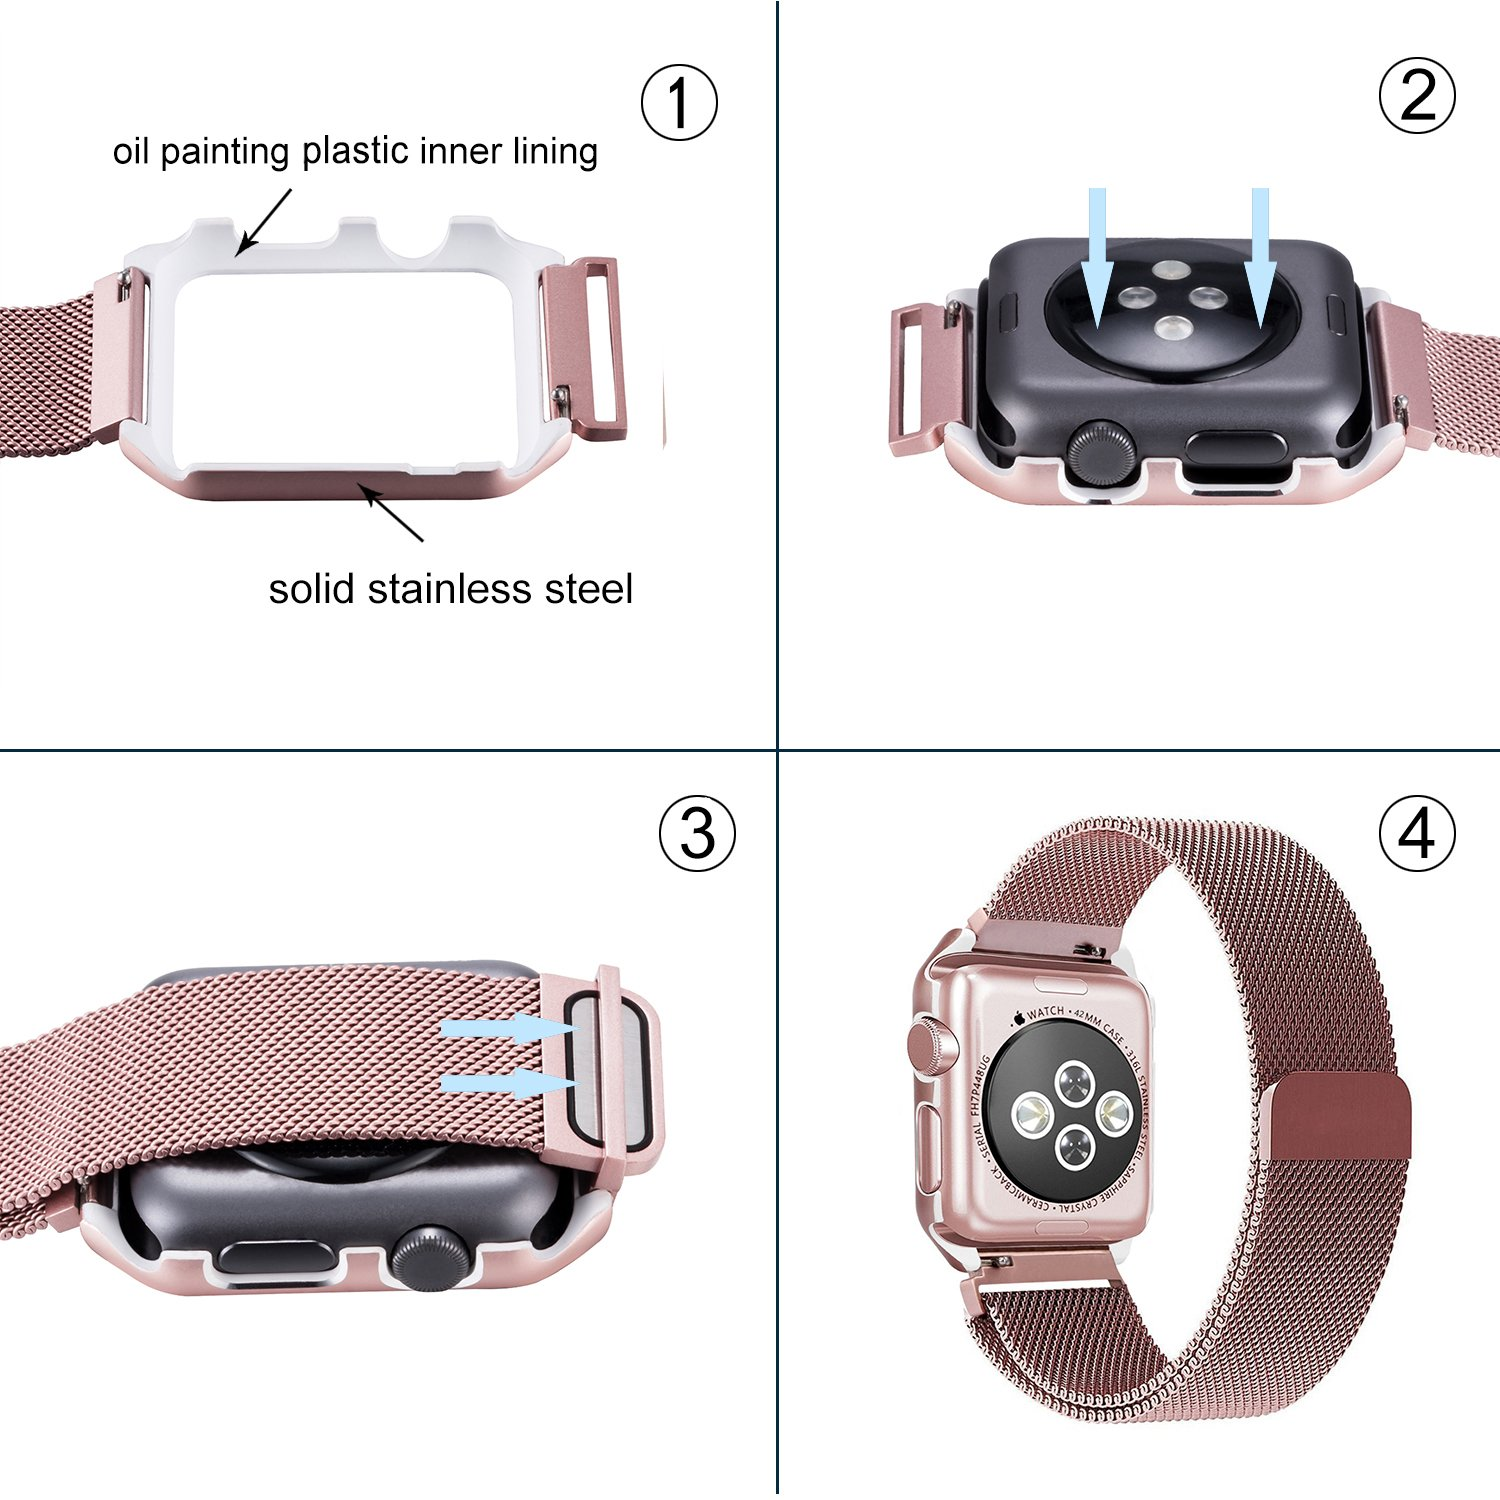 Apple Watch Band, iBazal 38mm Protective Case, Upgraded Milanese Stainless Steel Magnetic Closure Clasp Replacement iWatch Band for All 38mm Apple Watch Series 2&Series 1&Sport&Edition-Rose Gold 38mm